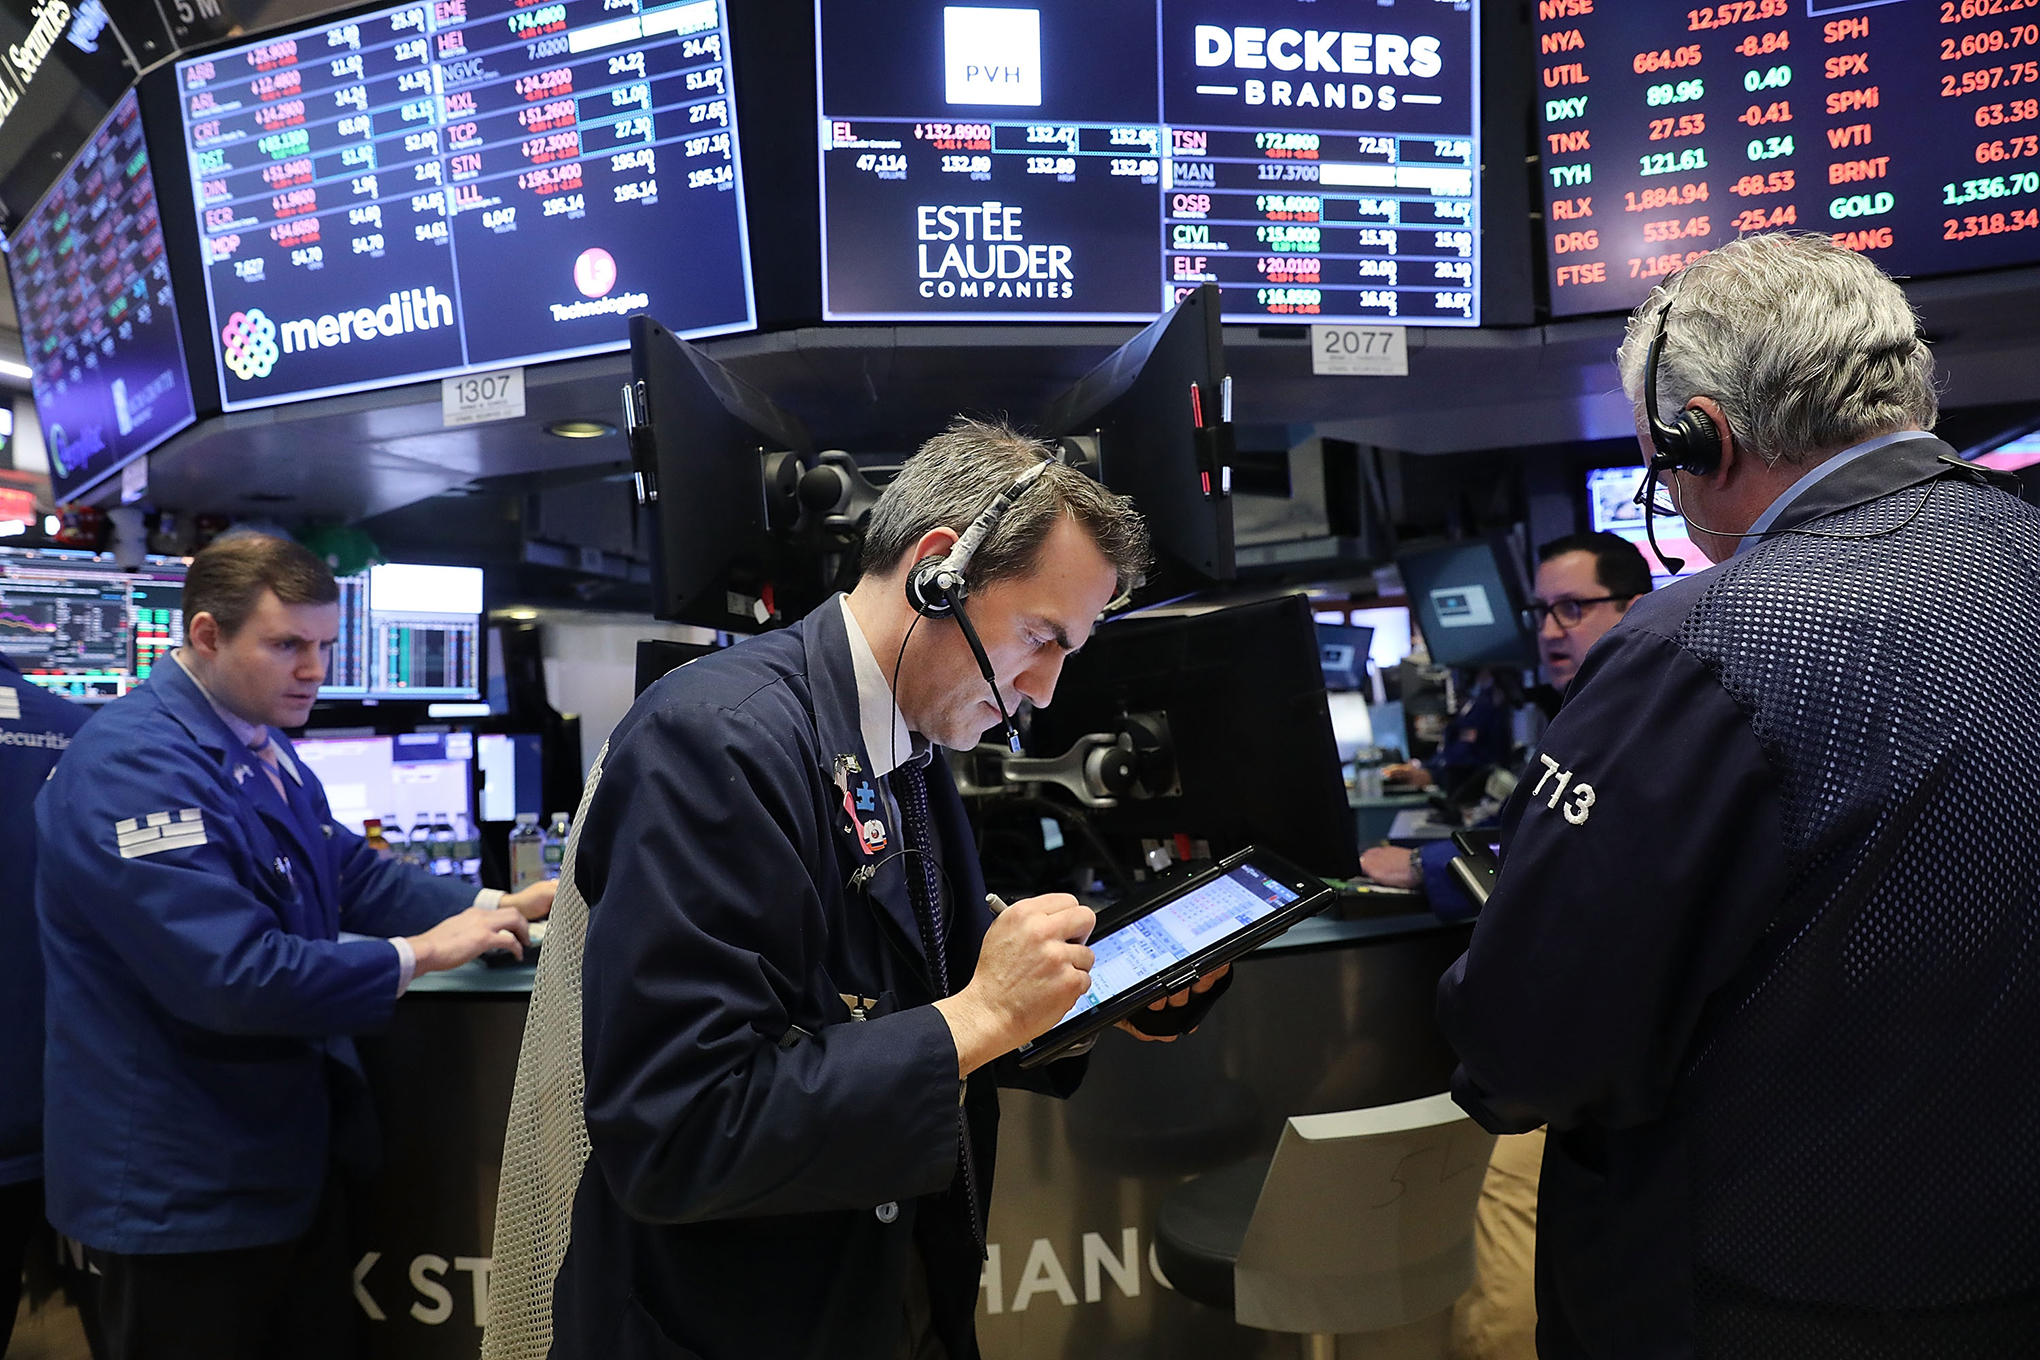 Traders work on the floor of the New York Stock Exchange (NYSE) on Feb. 6, 2018 in New York.